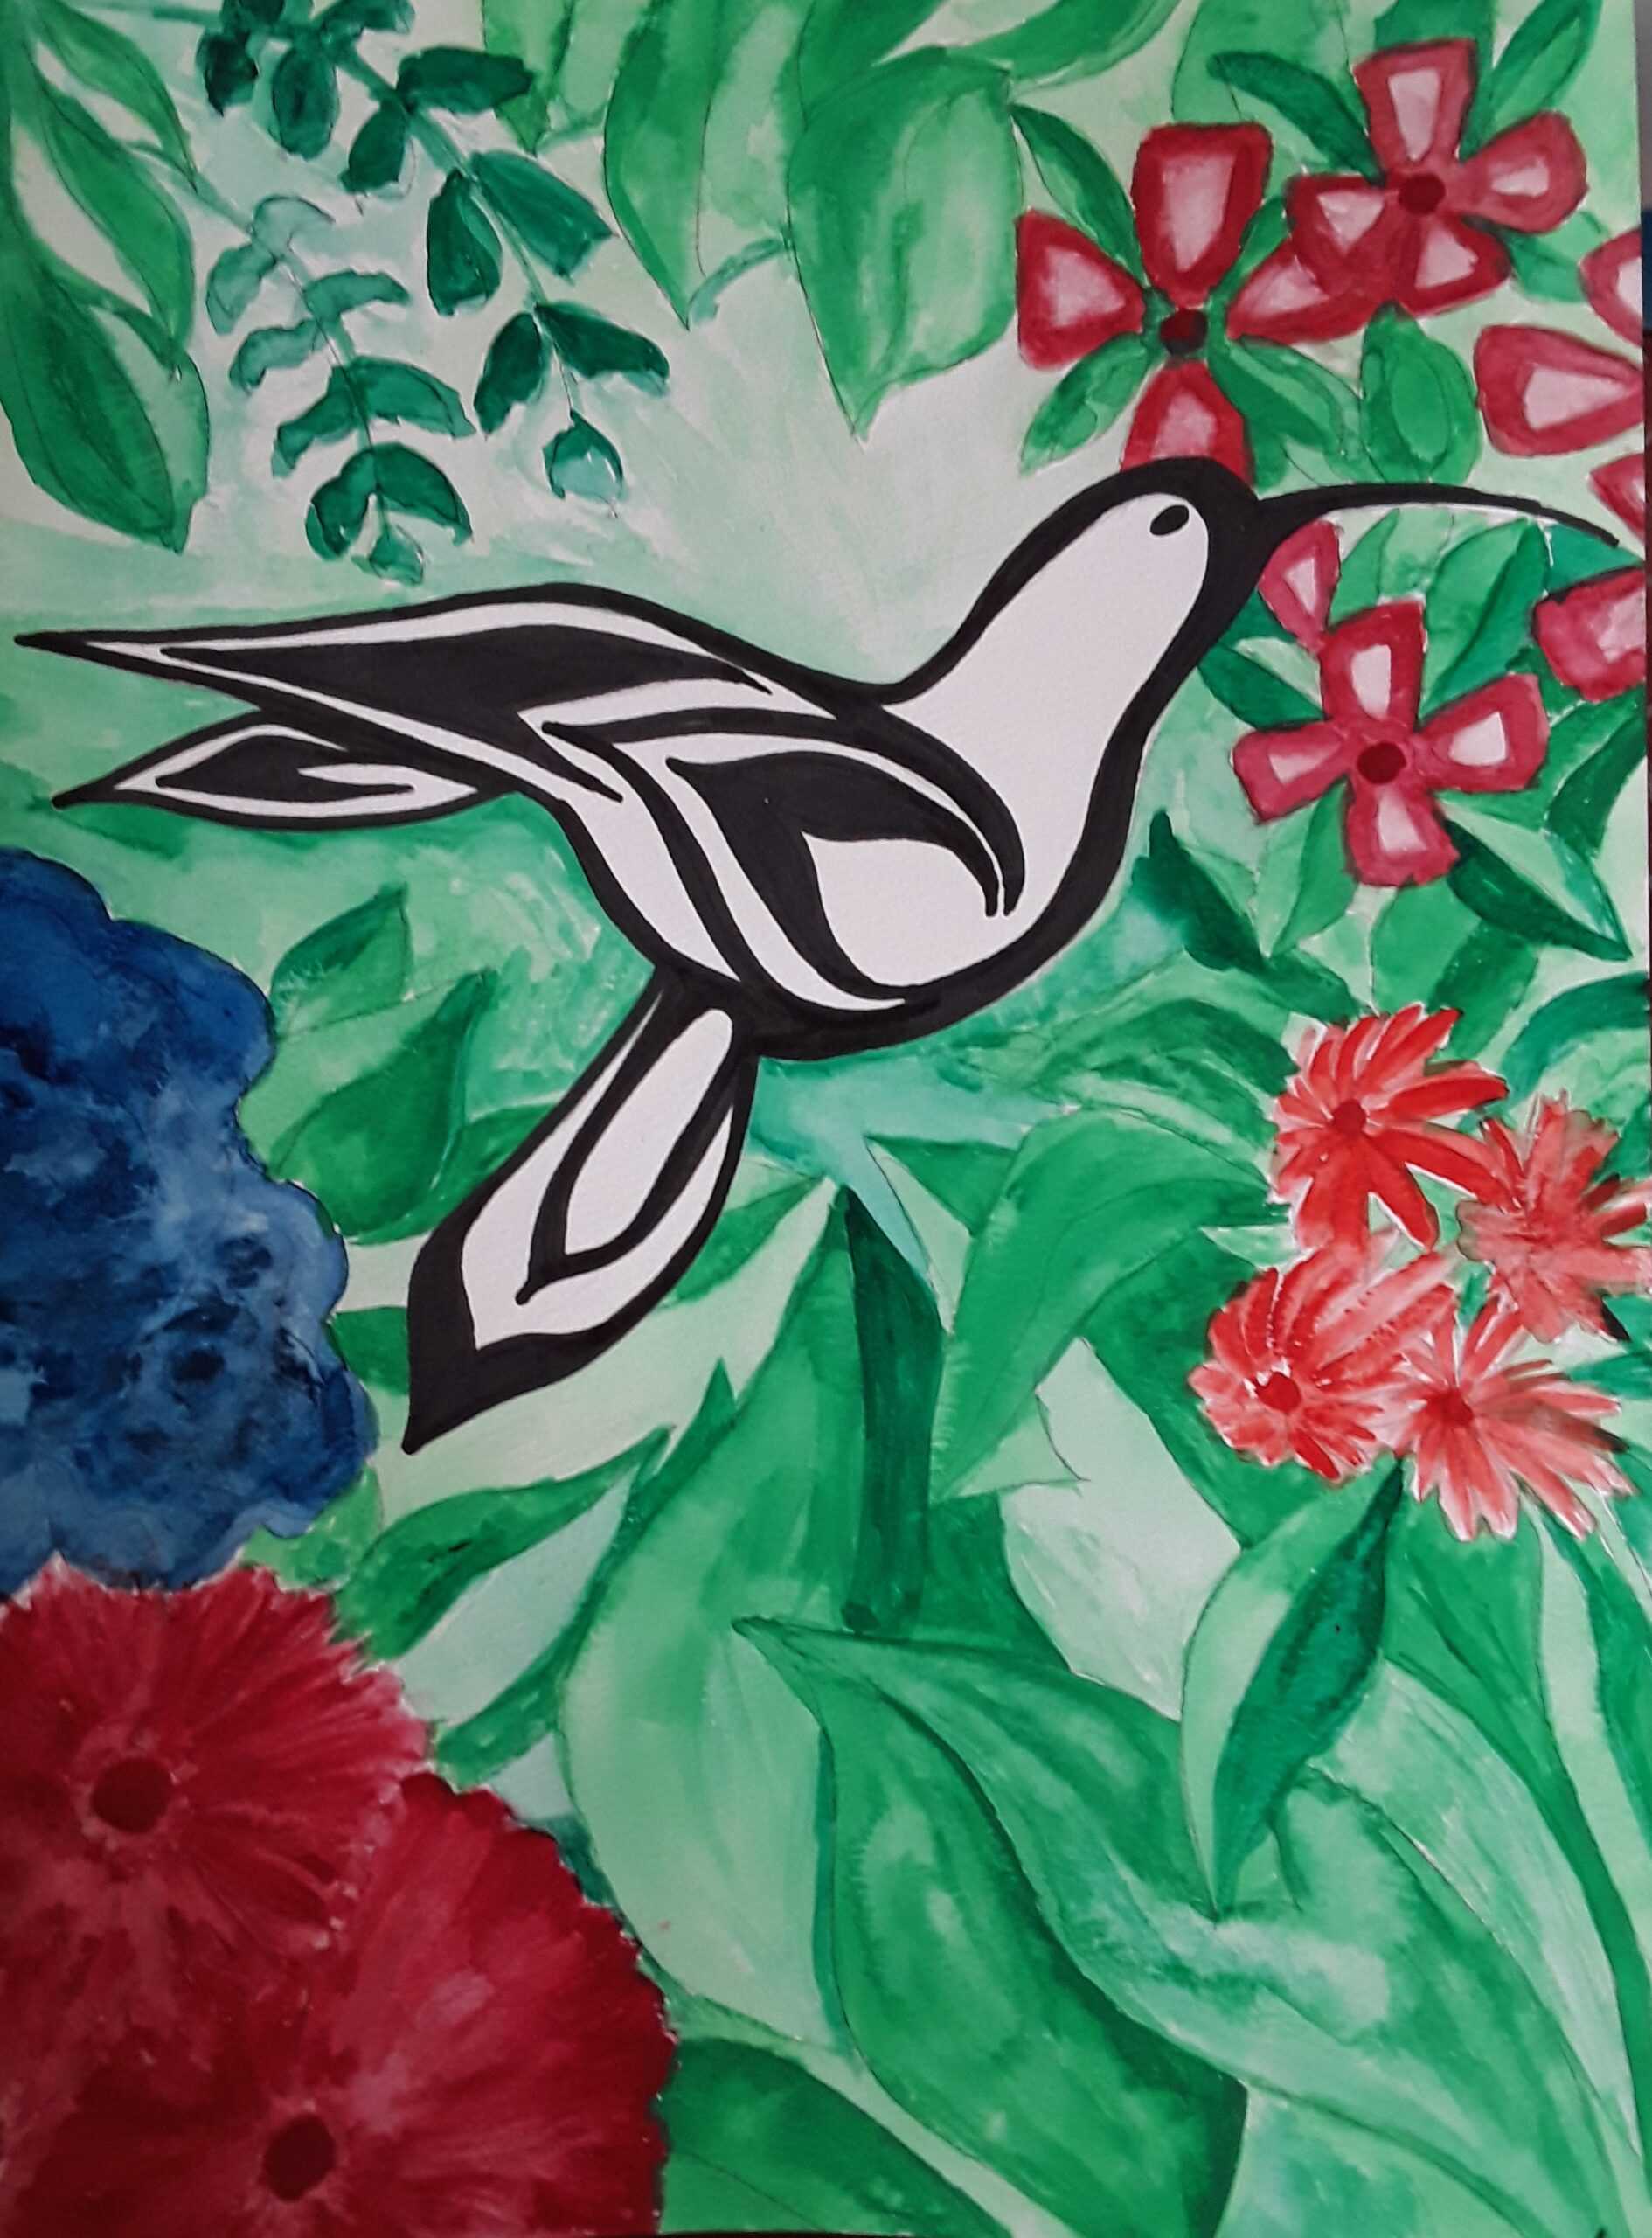 Painting of a hummingbird by Sherry Crawford